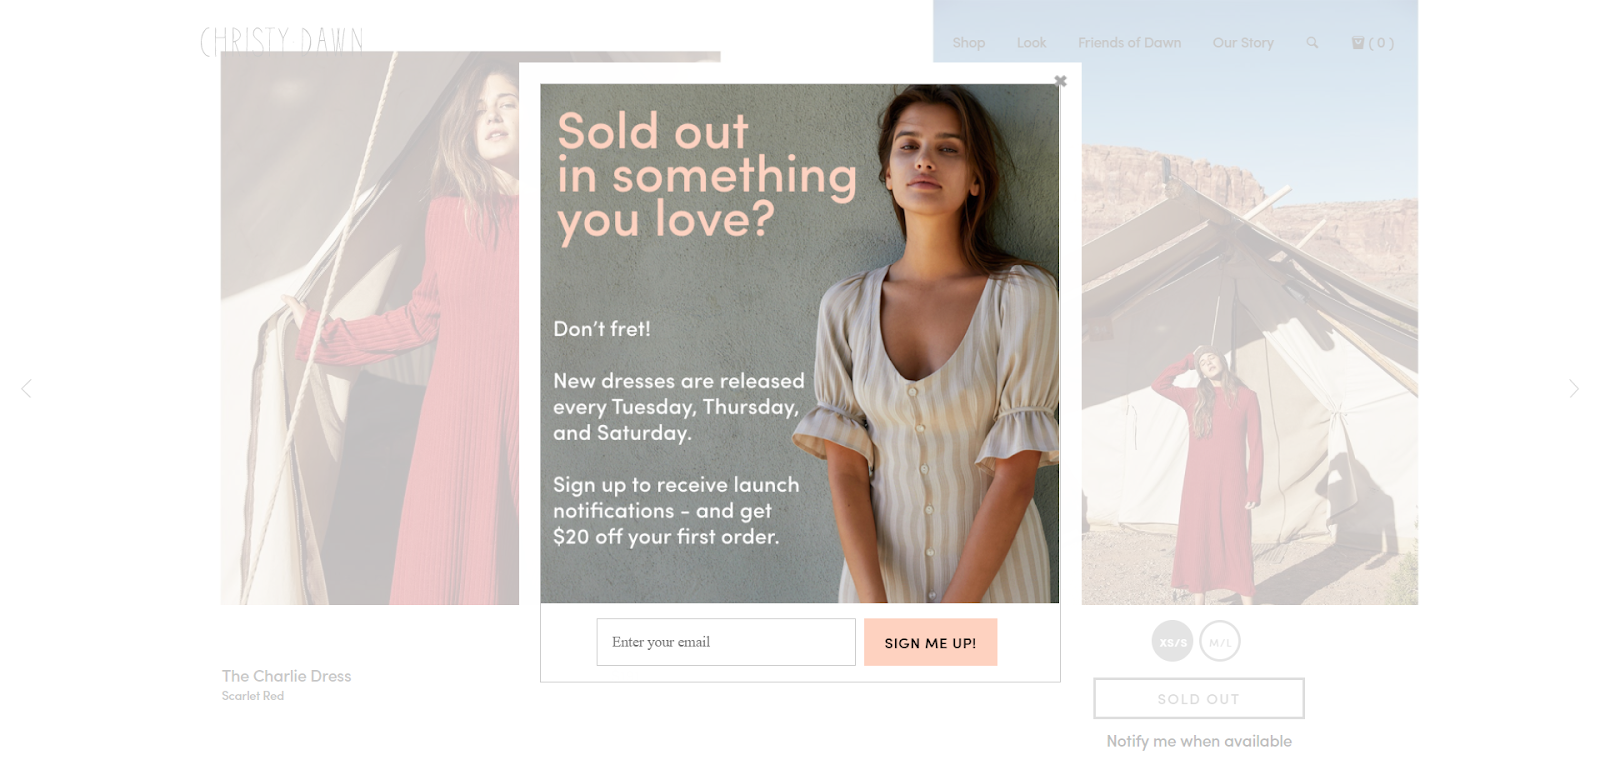 An example of an ecommerce popup that uses an out of stock product to encourage a customer to make a purchase.